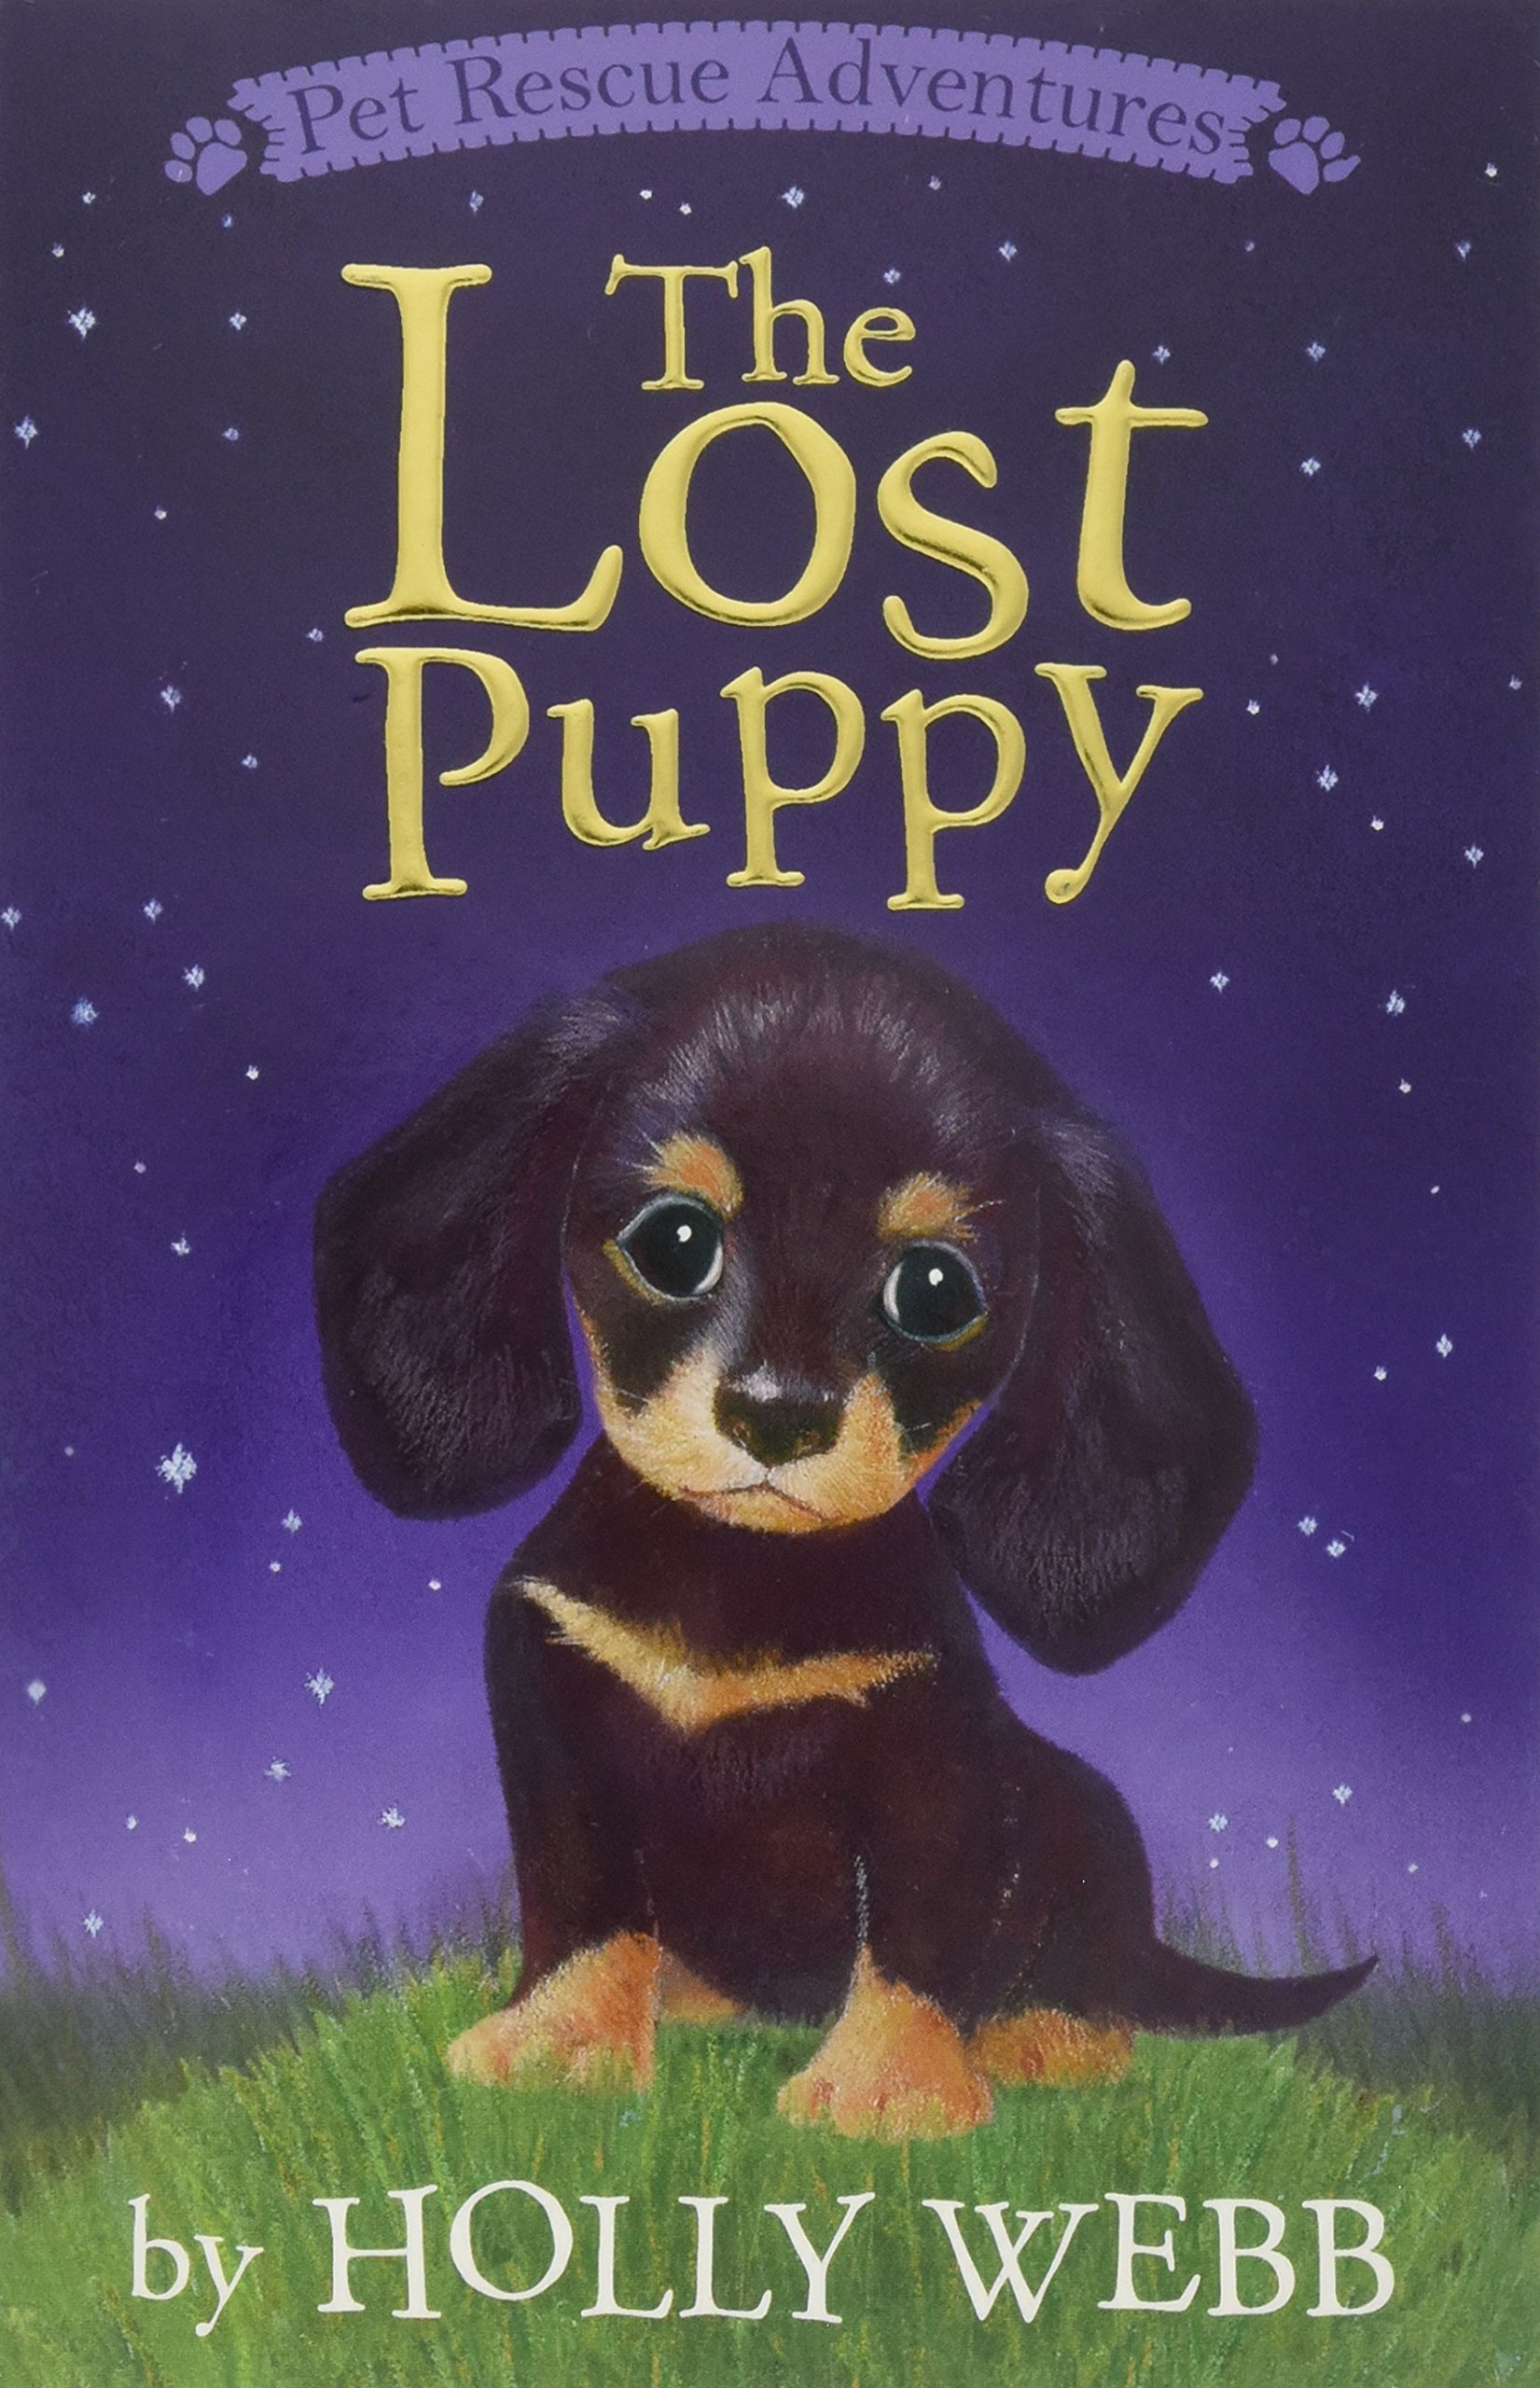 Download The Lost Puppy (Pet Rescue Adventures) PDF